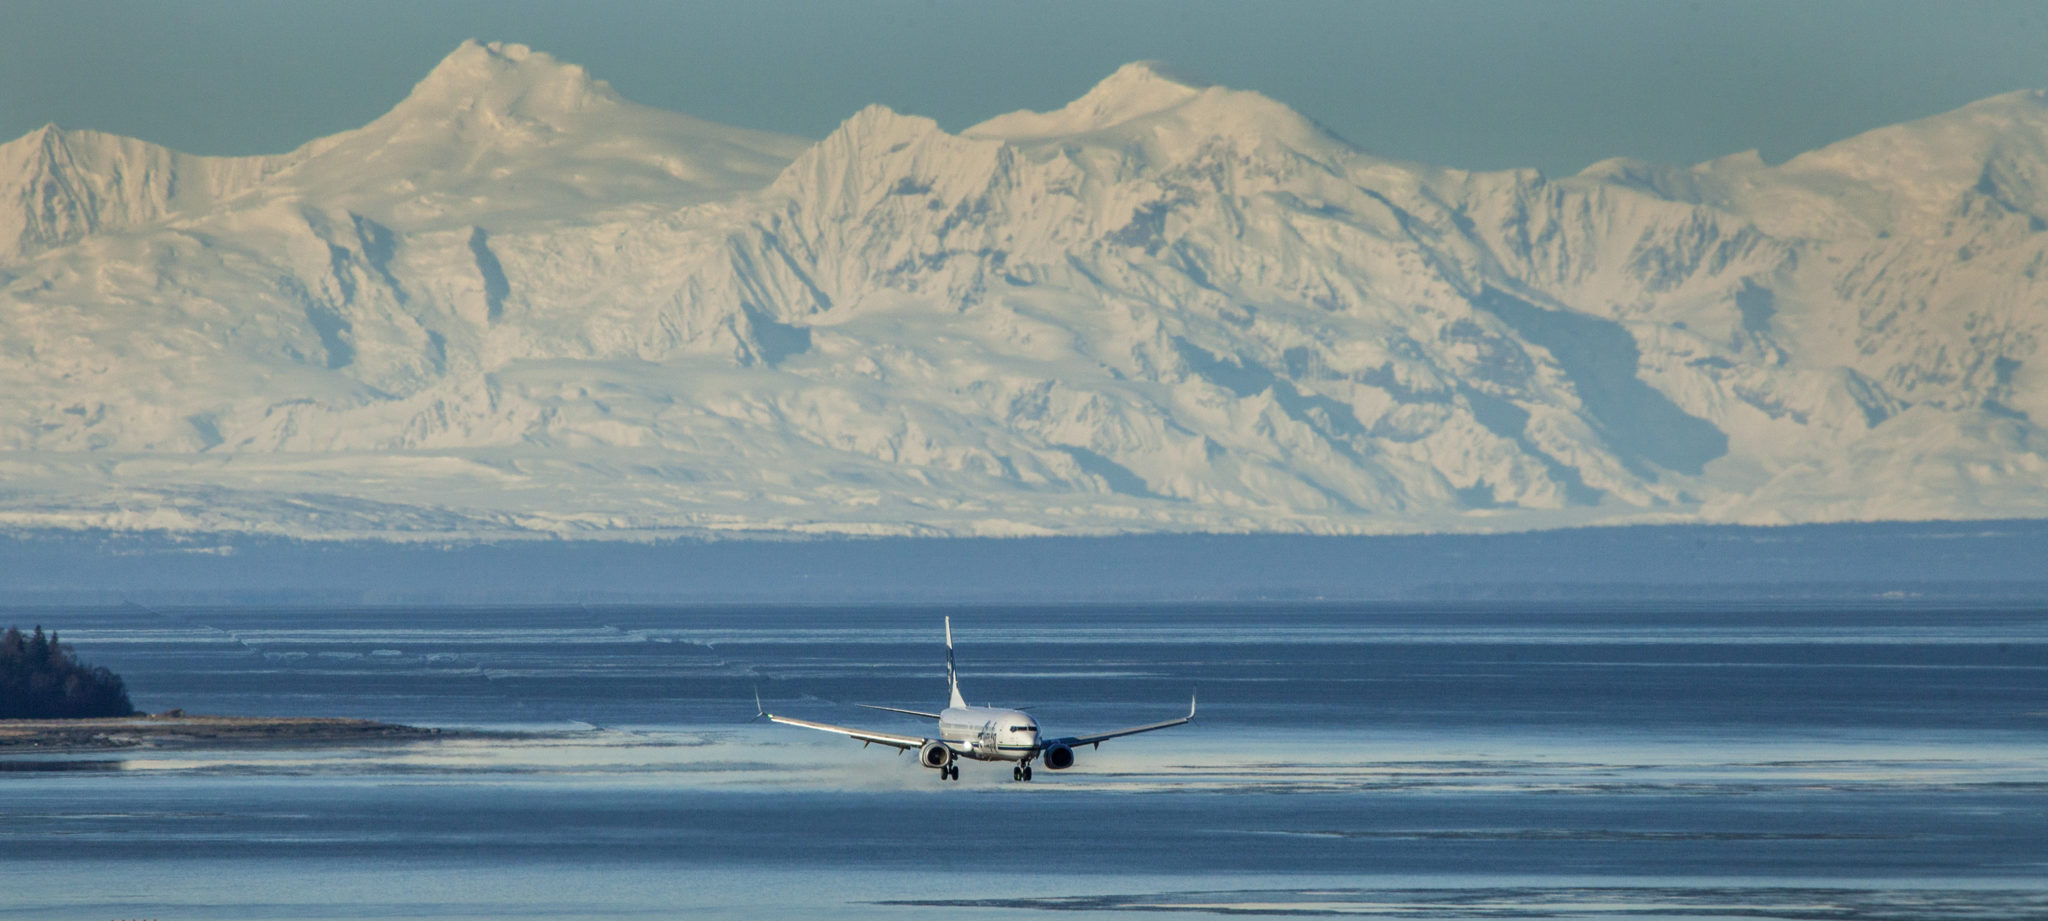 Aviation Photography in the Snow - Best Alaska Photography | Alaskafoto